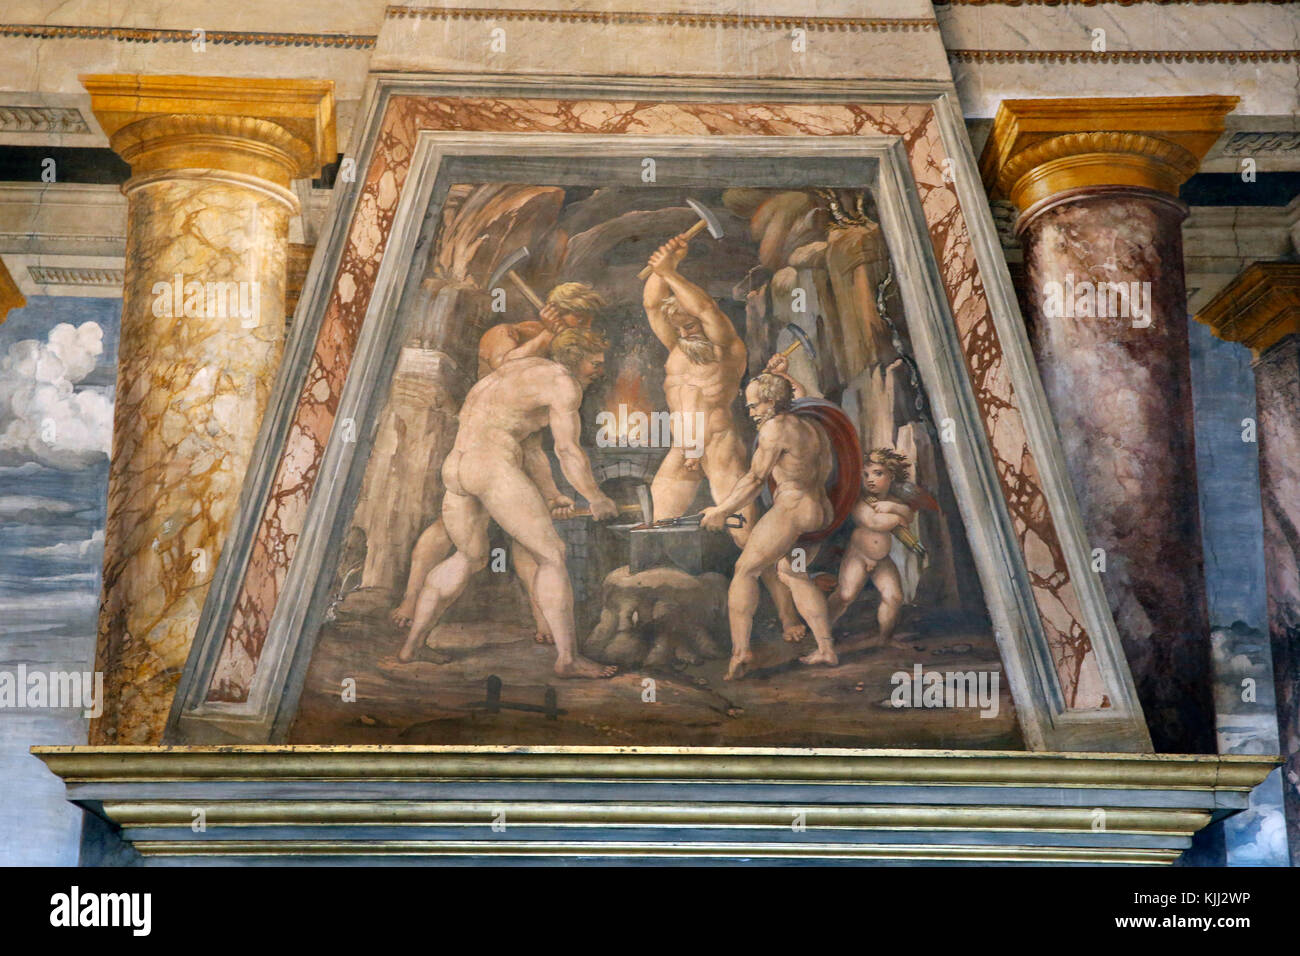 Villa Farnesina, Rome. The Perspectives Hall. Freco above the fireplace: Forge of Vulcan. Italy. - Stock Image